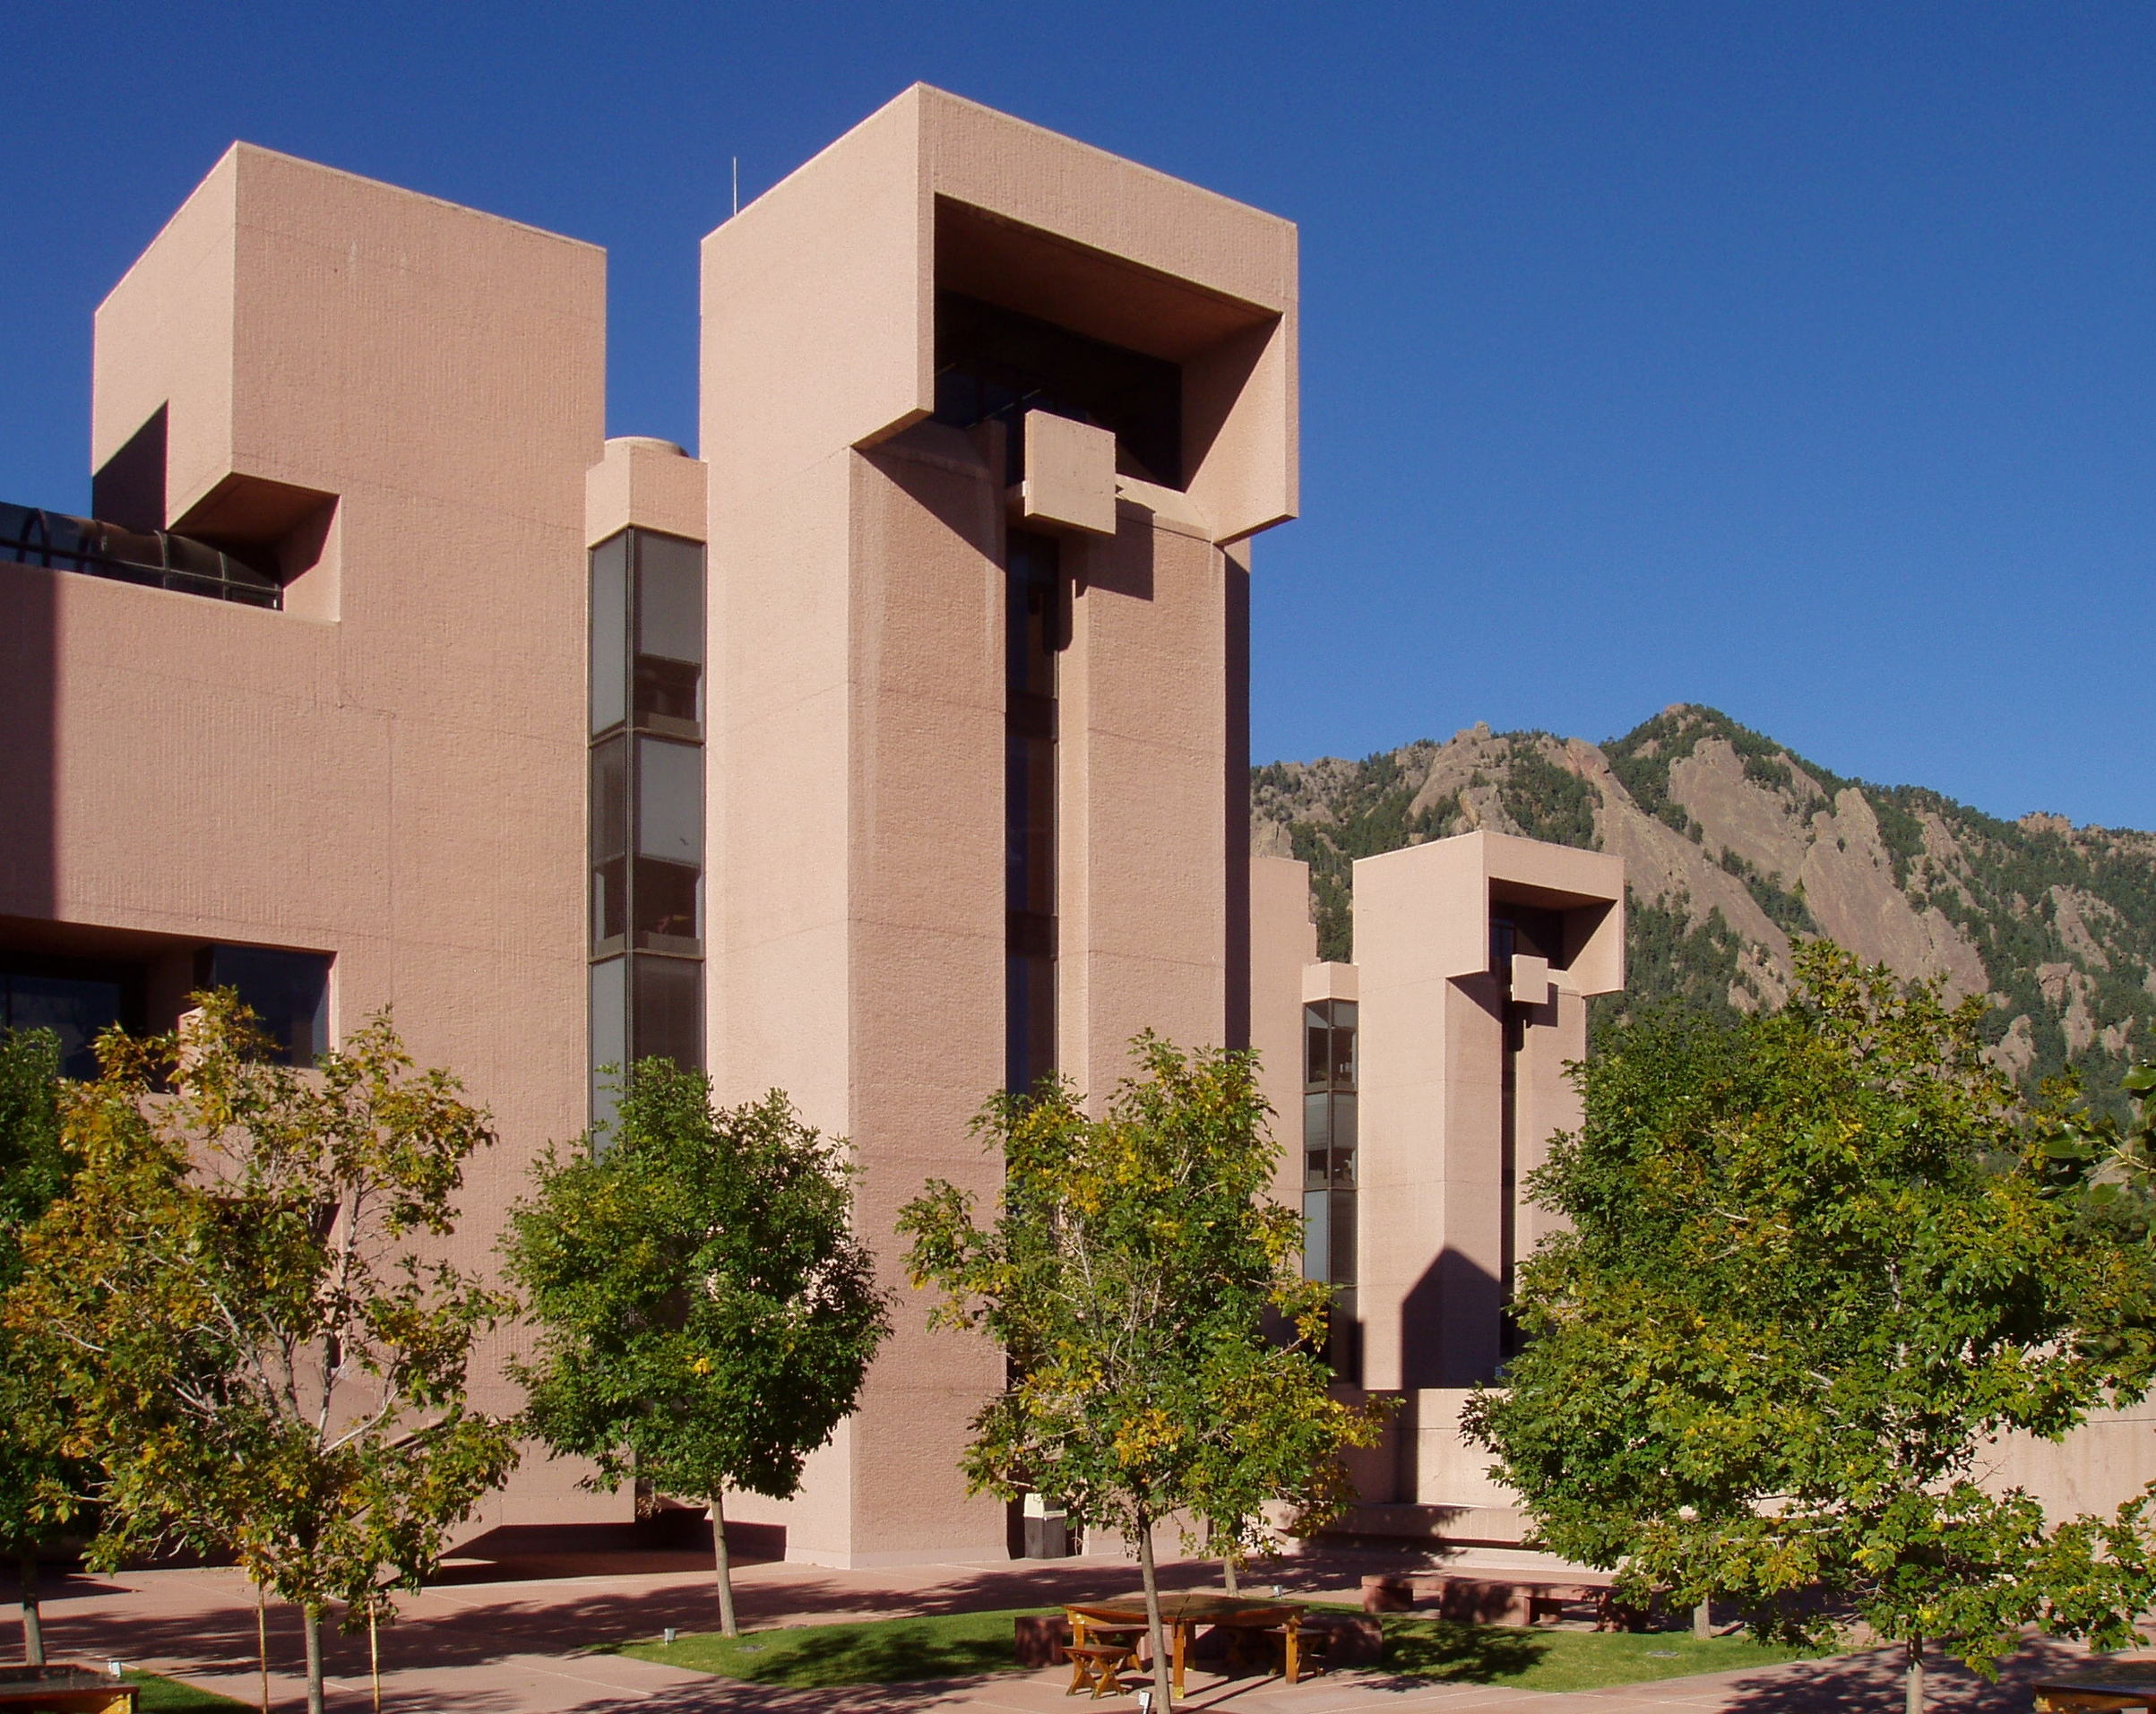 National Center for Atmospheric Research, Mesa Laboratory